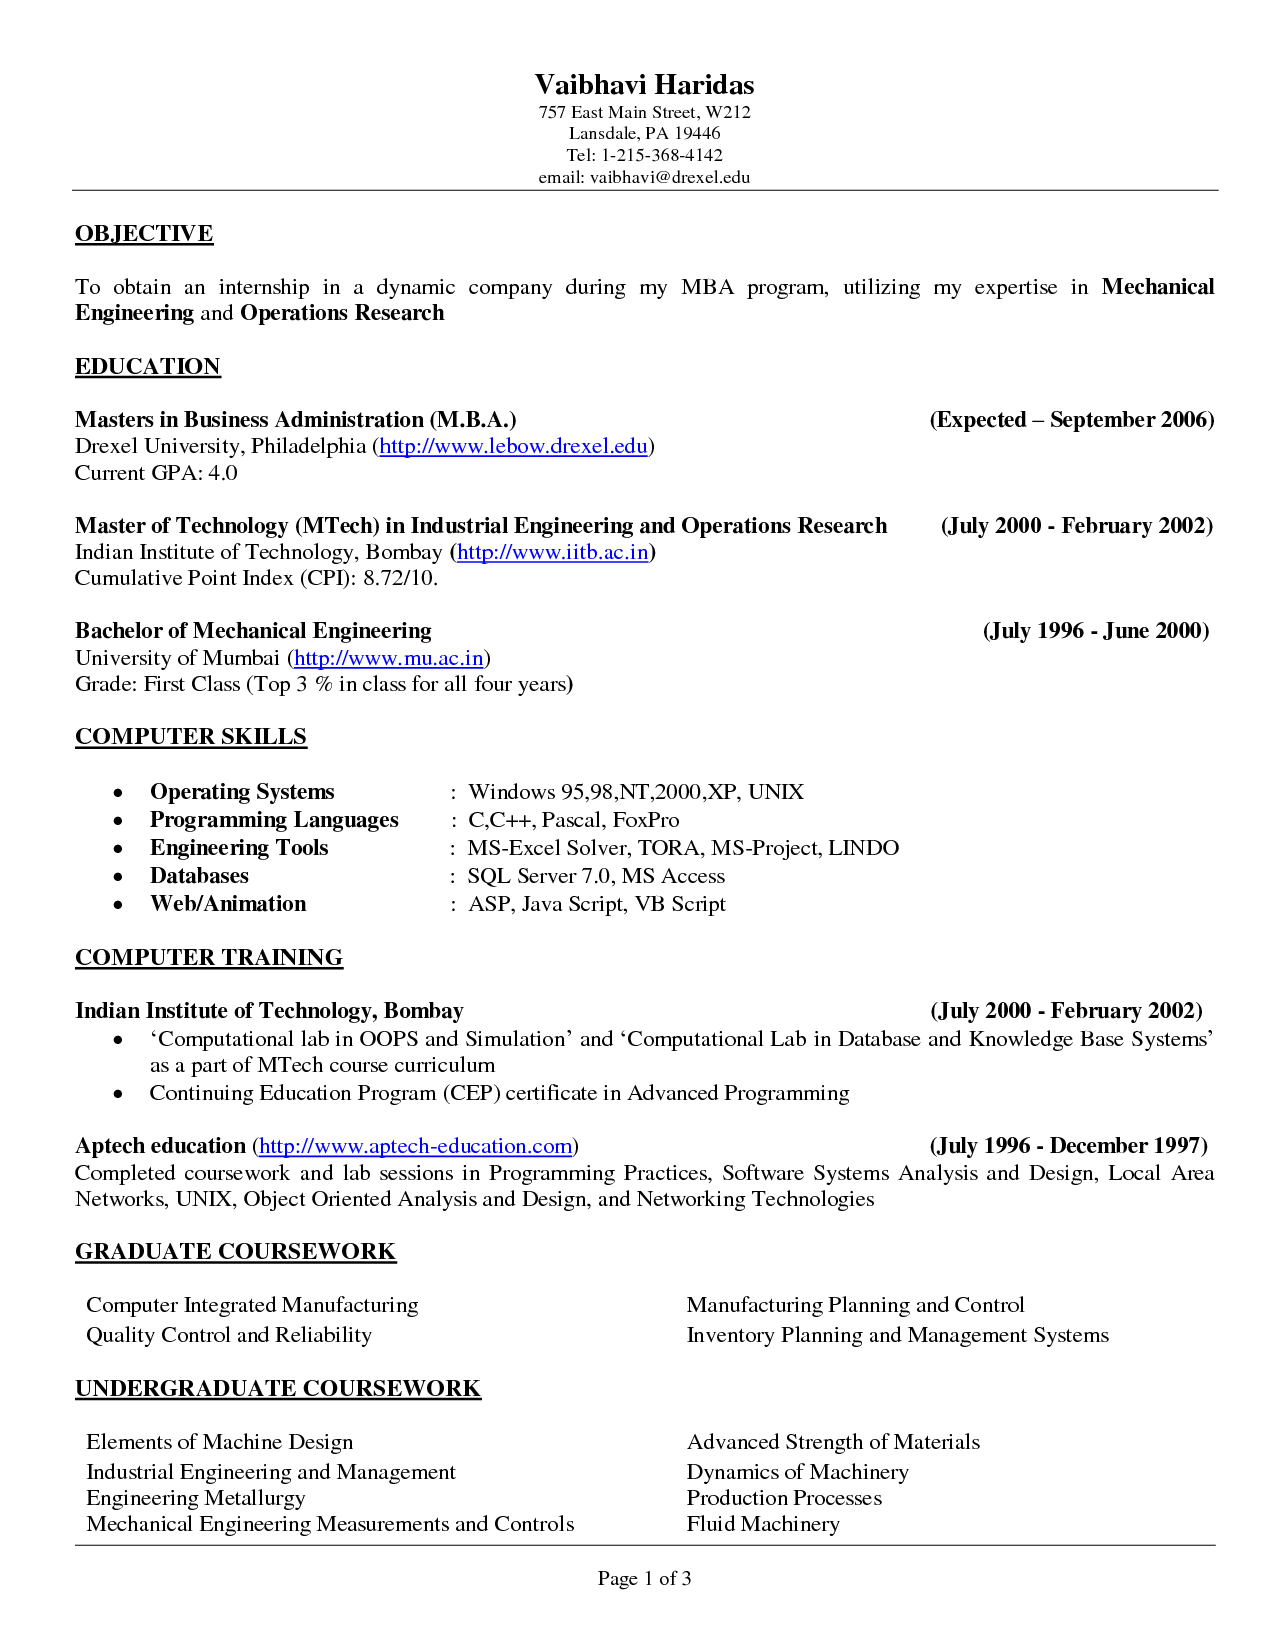 resume examples internship in dynamic company objective resume with master of technology in industrial engineering - Industrial Engineer Resume New Section